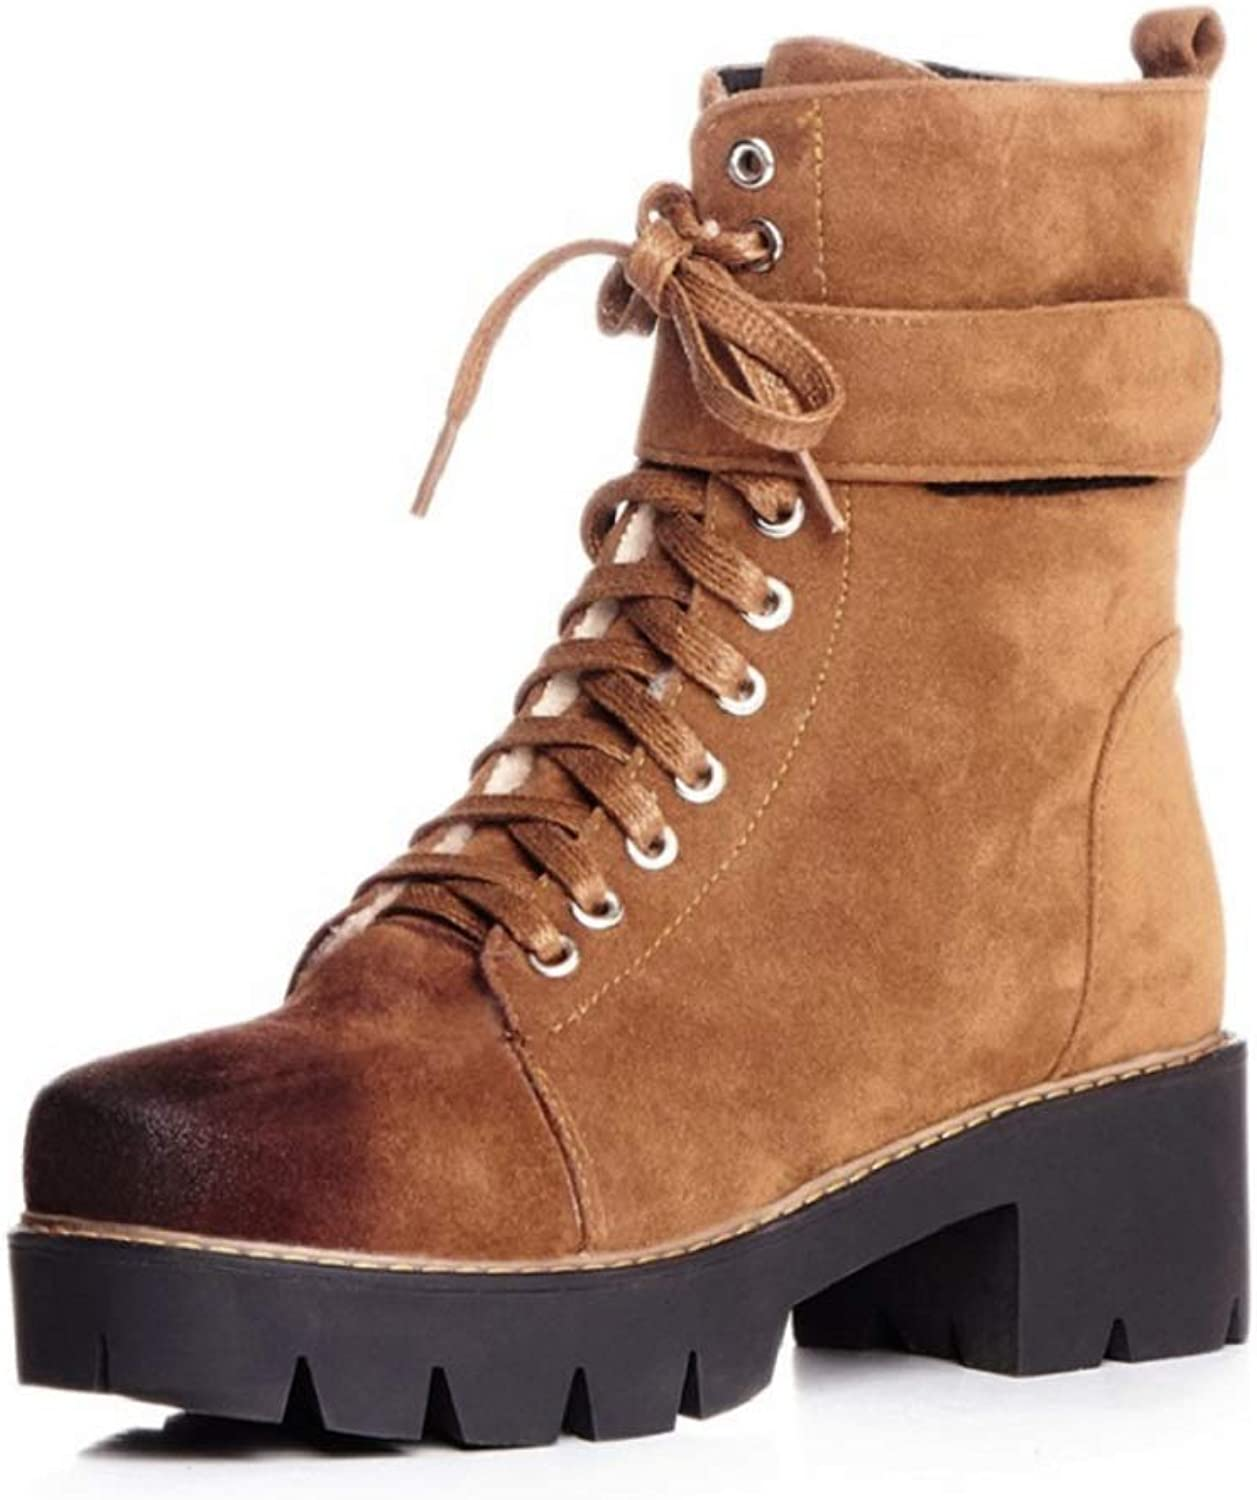 Ladies Women Calf Biker Boots Lace Up Casual Boots Autumn and Winter New Locomotive Belt Buckle Martin Boots Creepers Boots Size